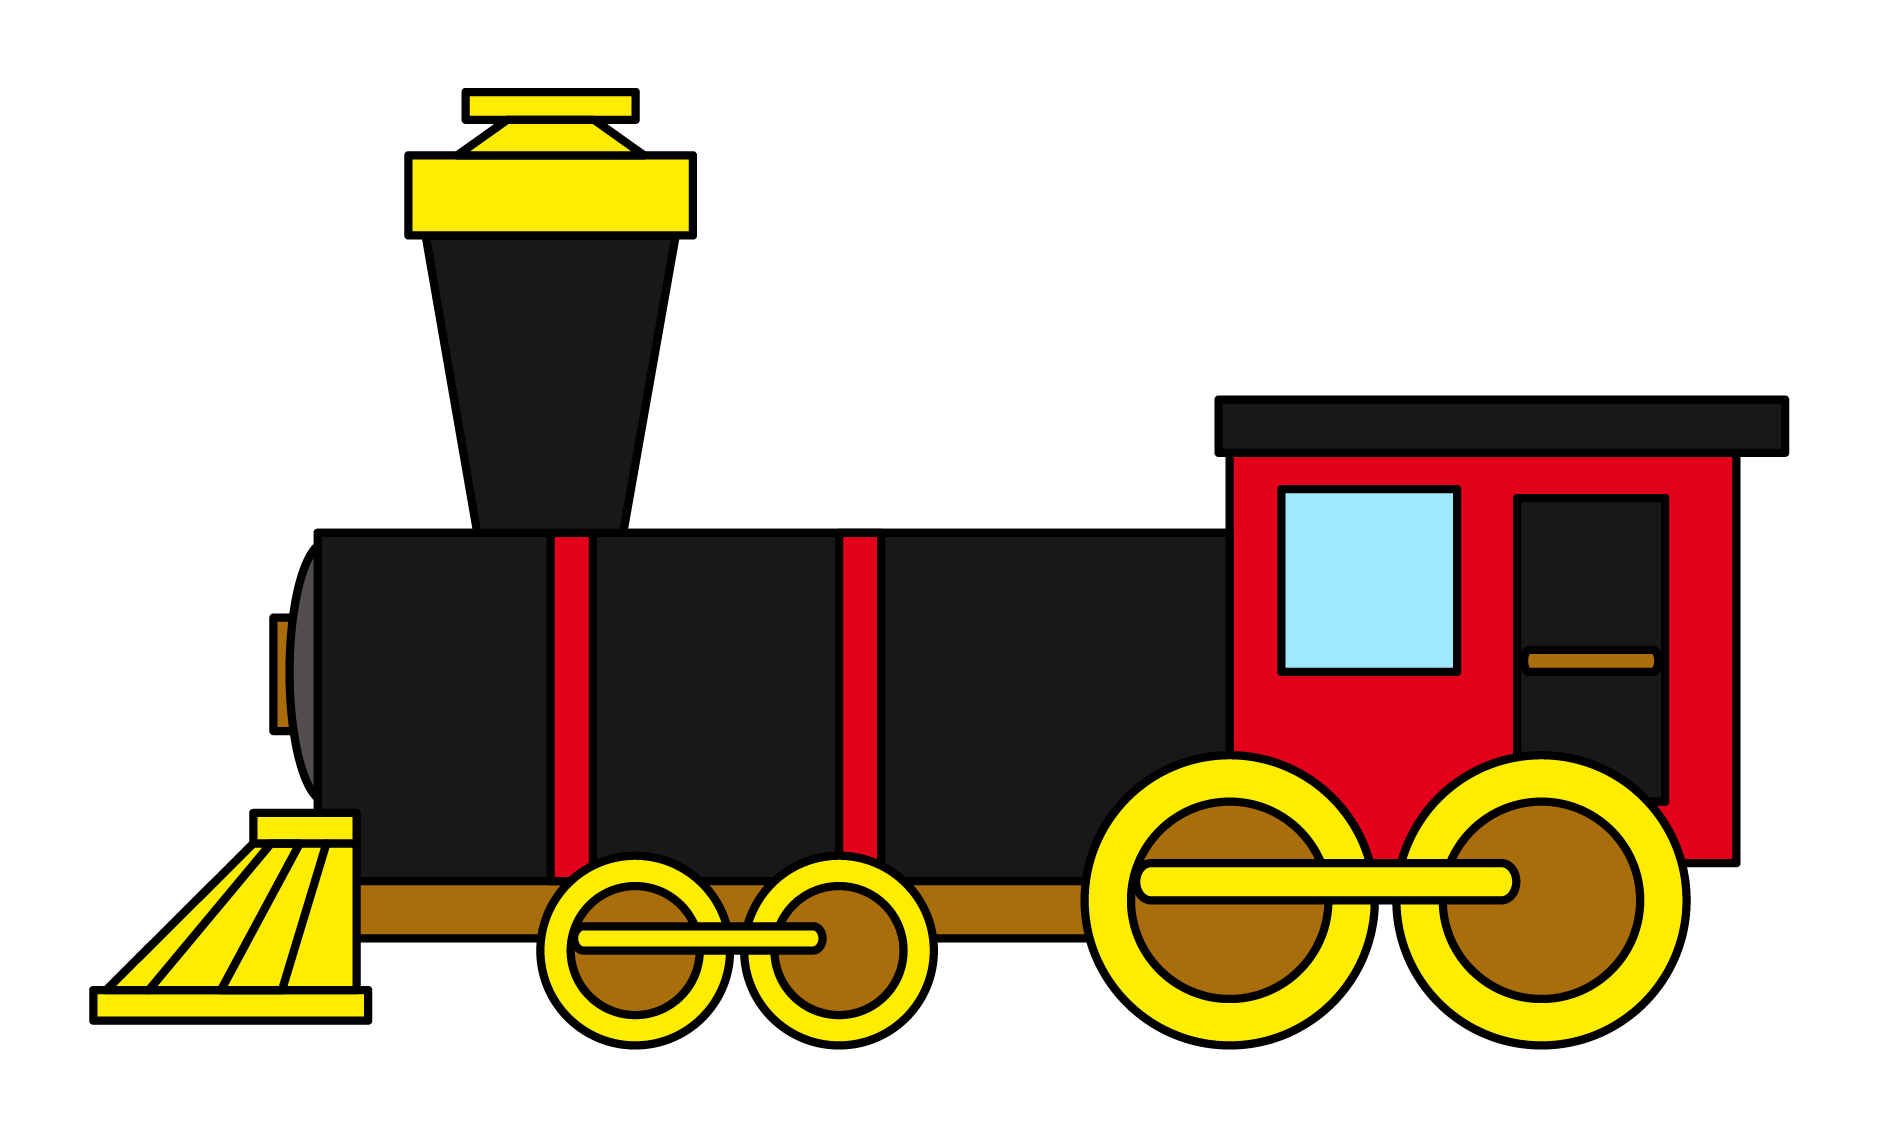 Track clipart rail track. Train for kids at